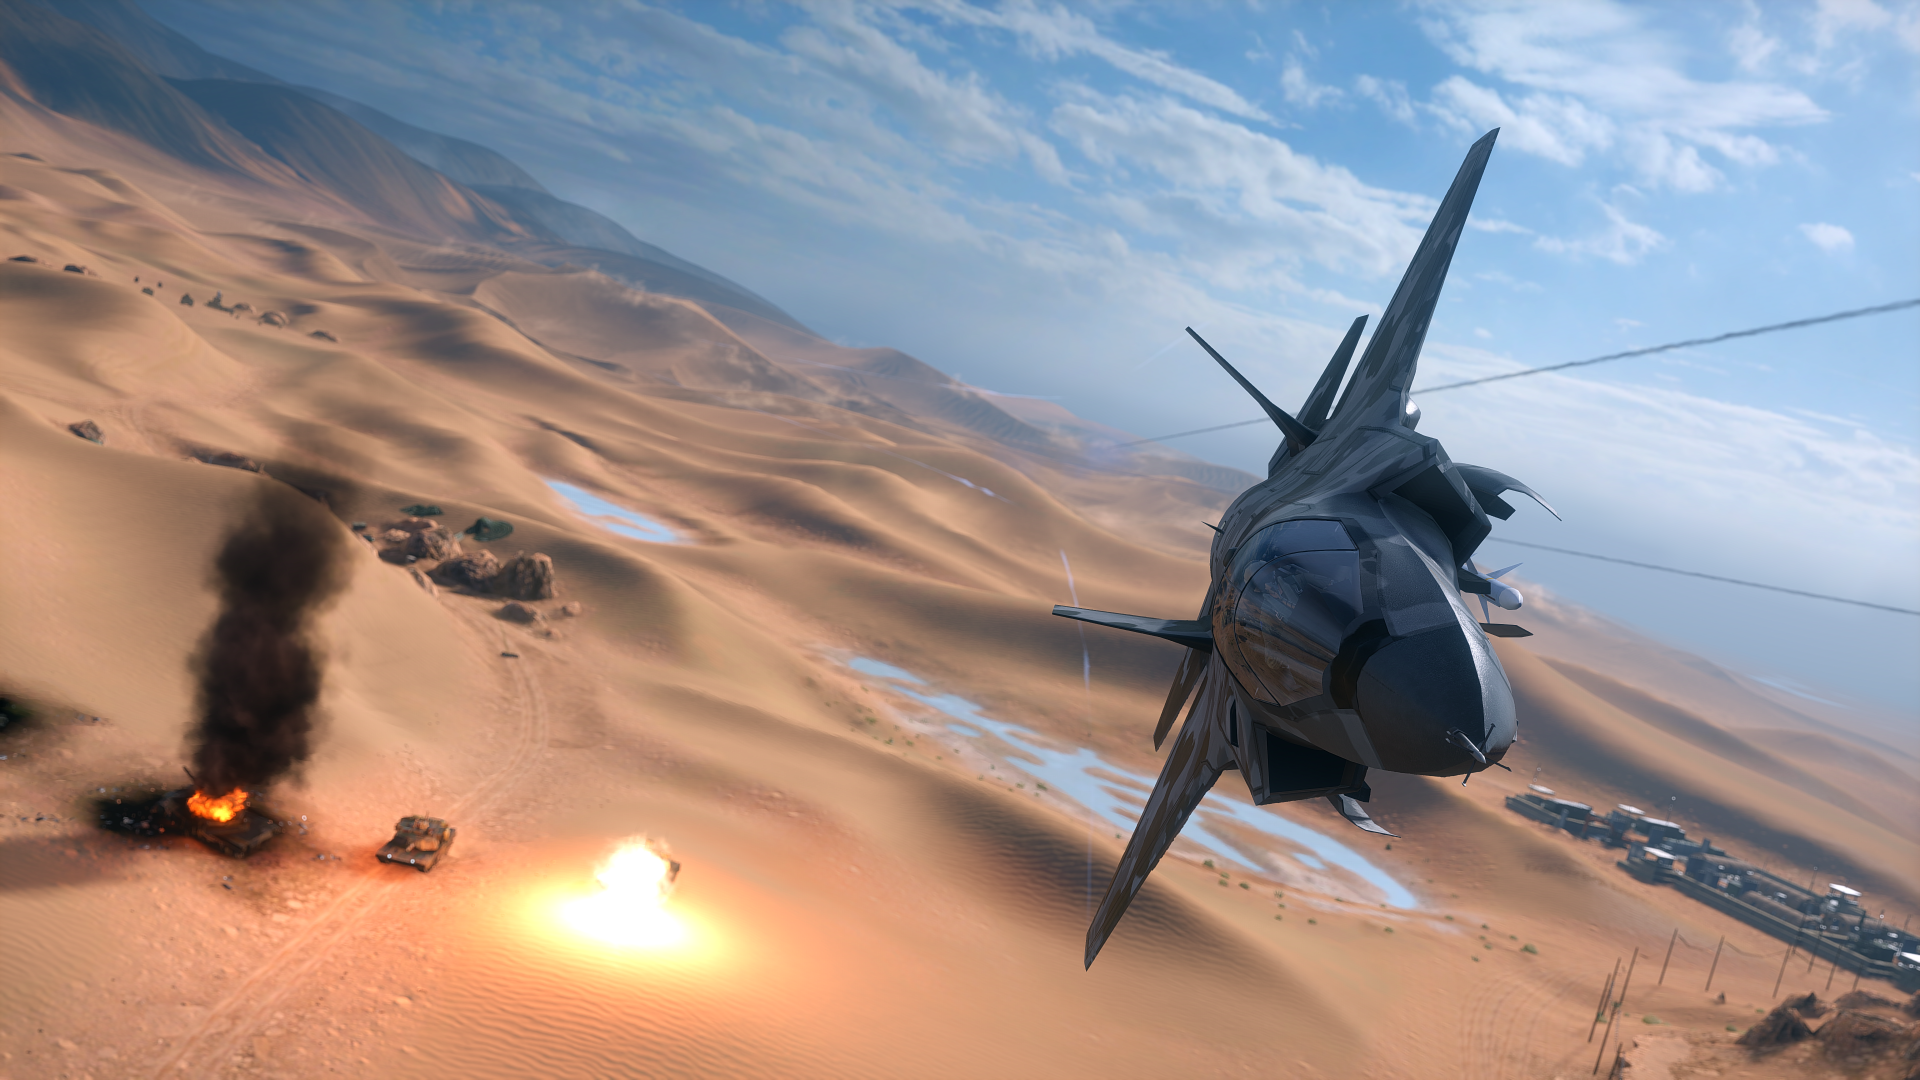 Video Game - Battlefield 4  Desert Jet Fighter Wallpaper